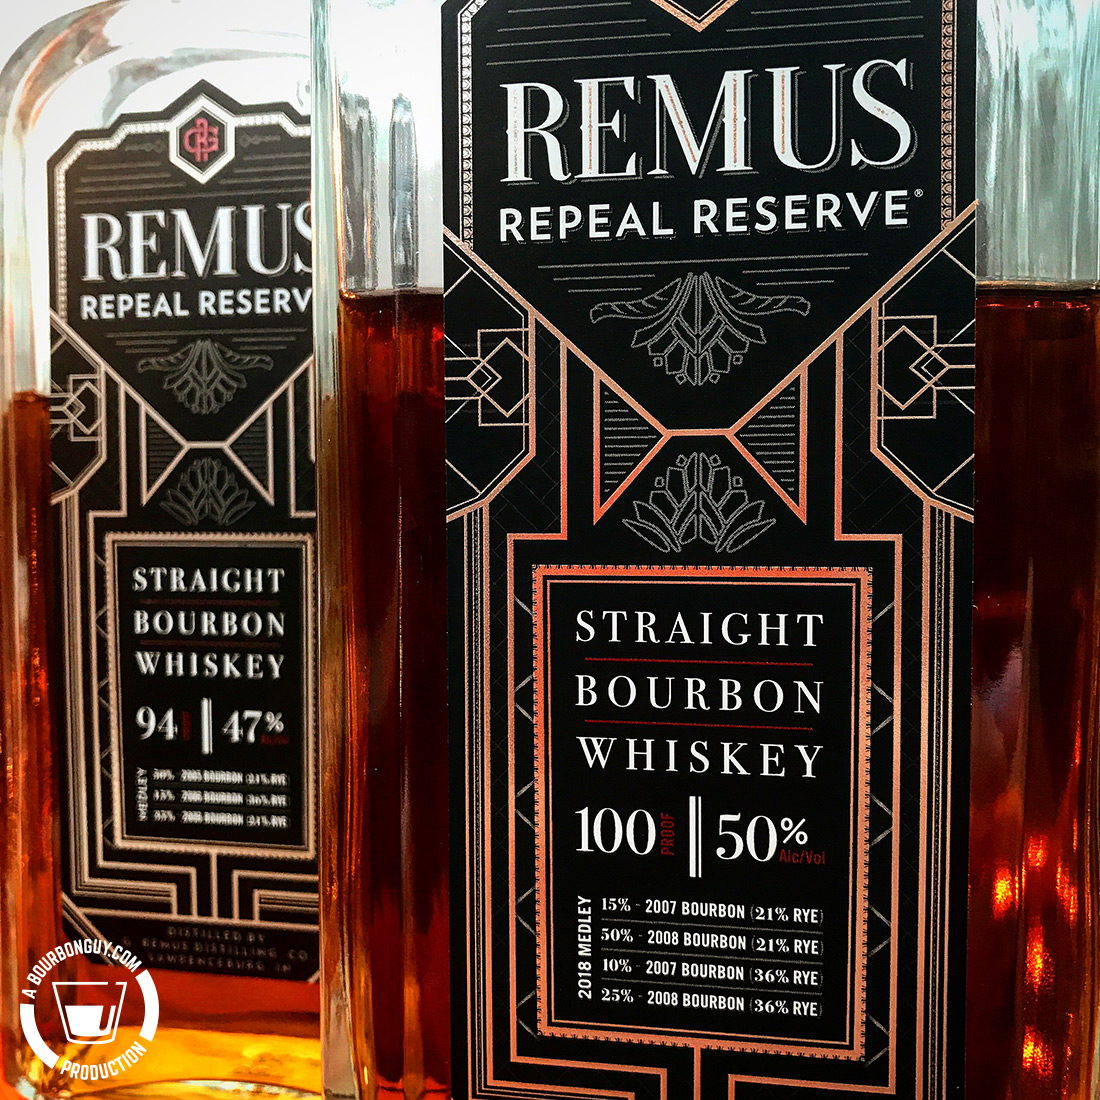 IMAGE: Bottle fronts of Remus Repeal Reserve Series 1 and Series 2.